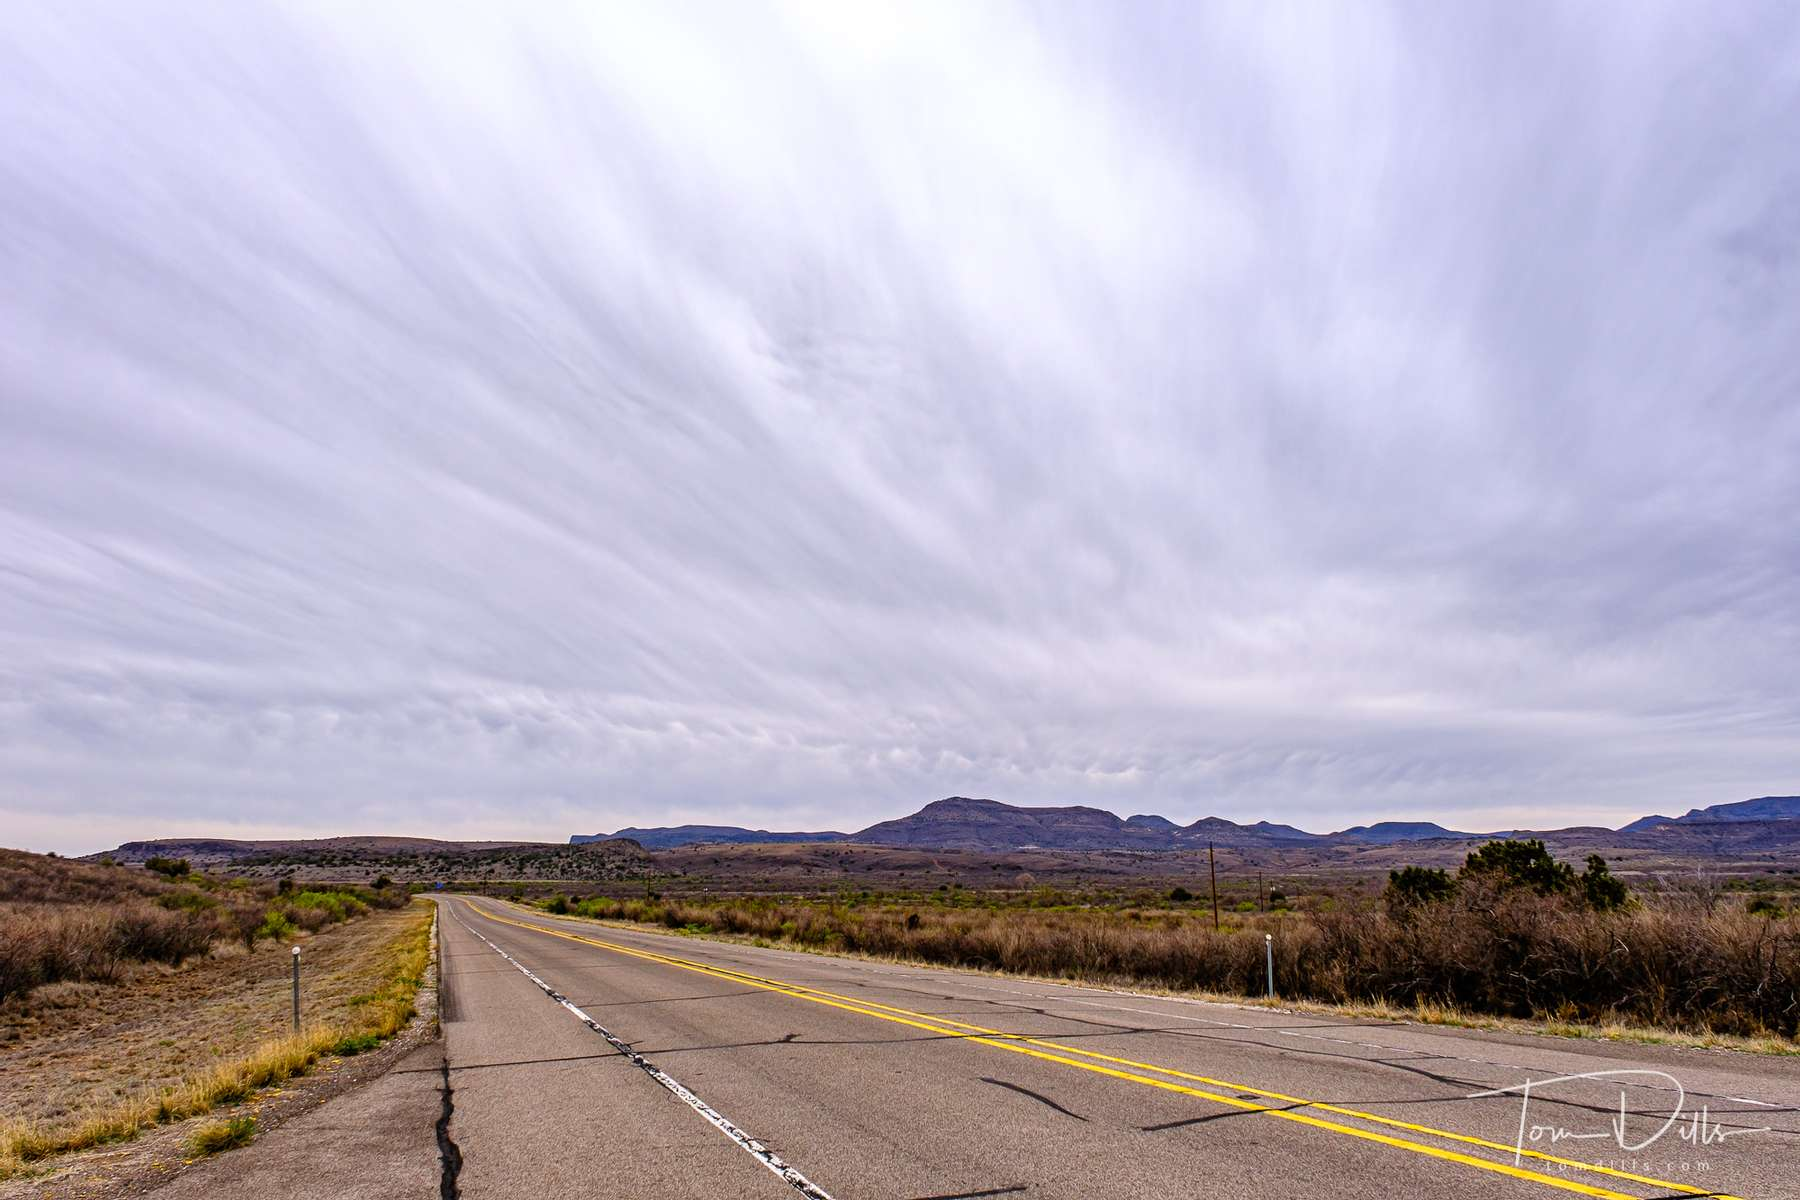 Scenery and interesting clouds along SR-118 near Alpine, Texas